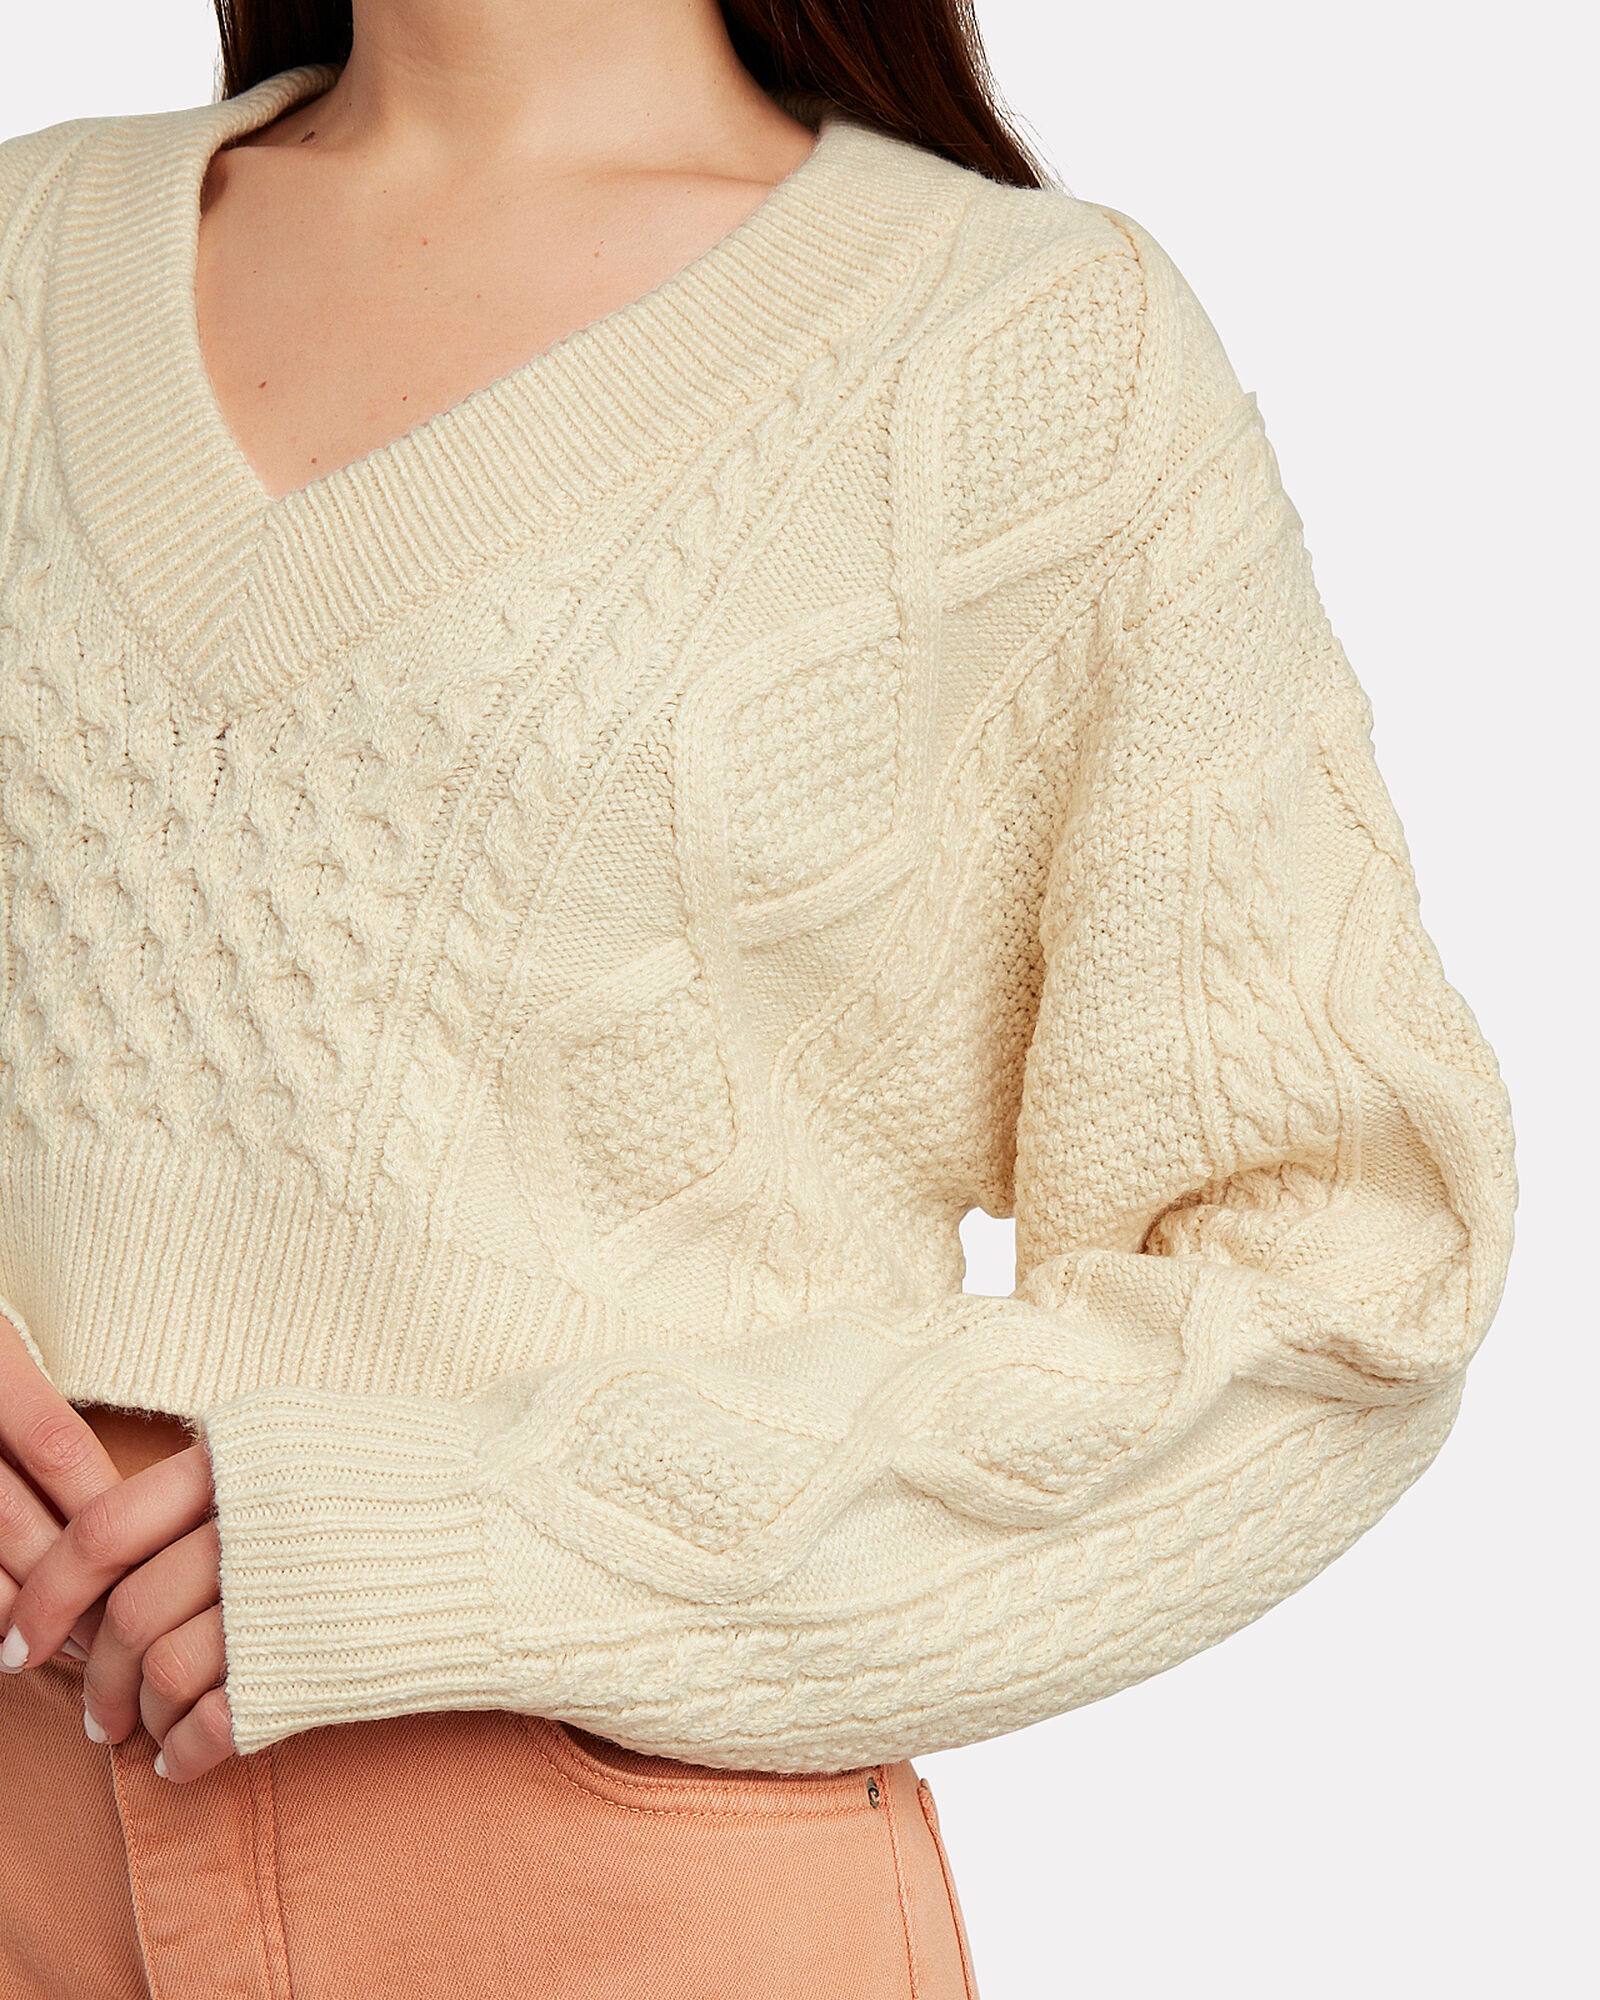 Unhinged Cropped Cable Knit Sweater, CREAM, hi-res